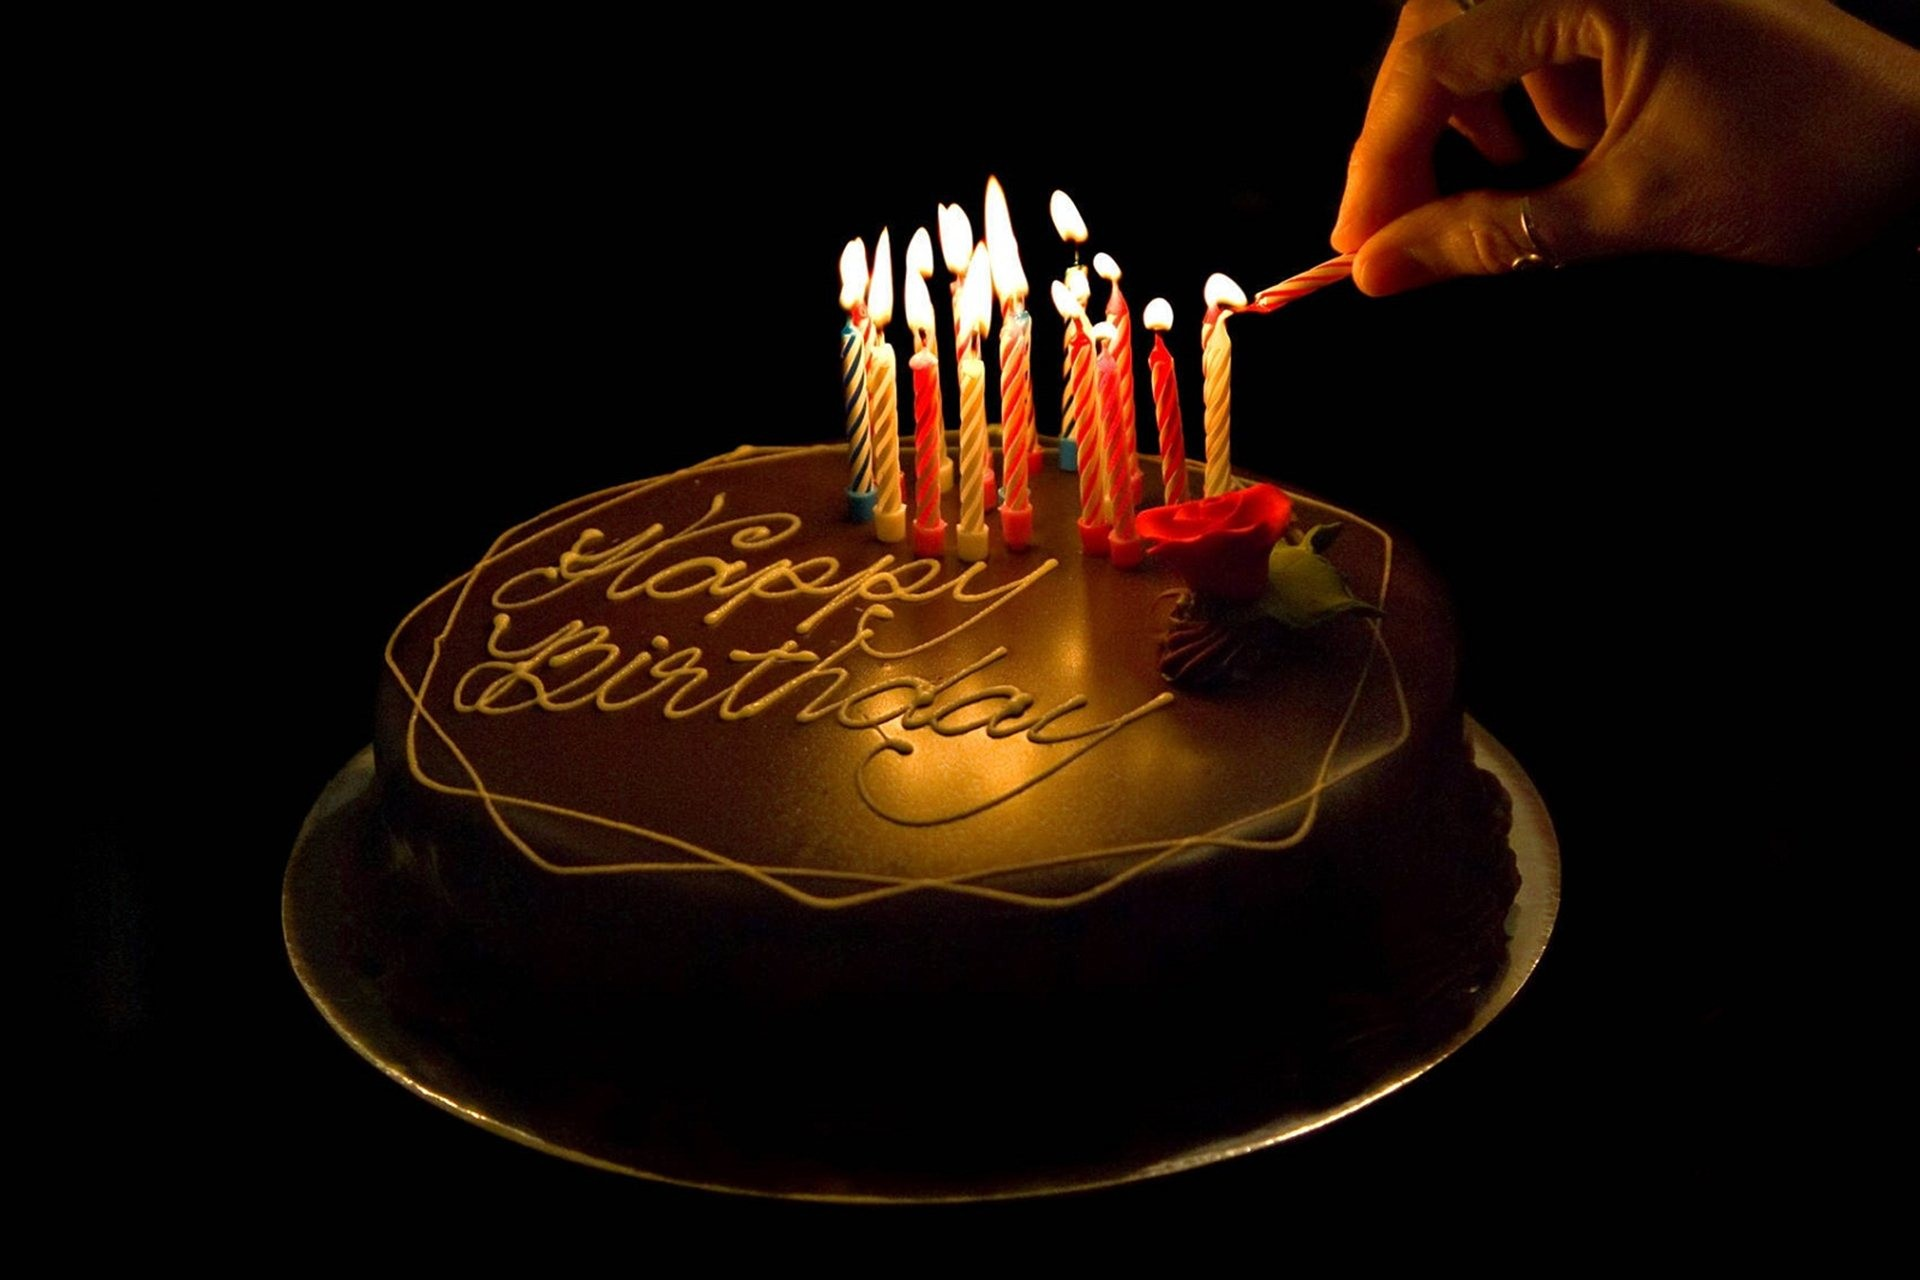 Happy Birthday Cake Candles Wallpapers